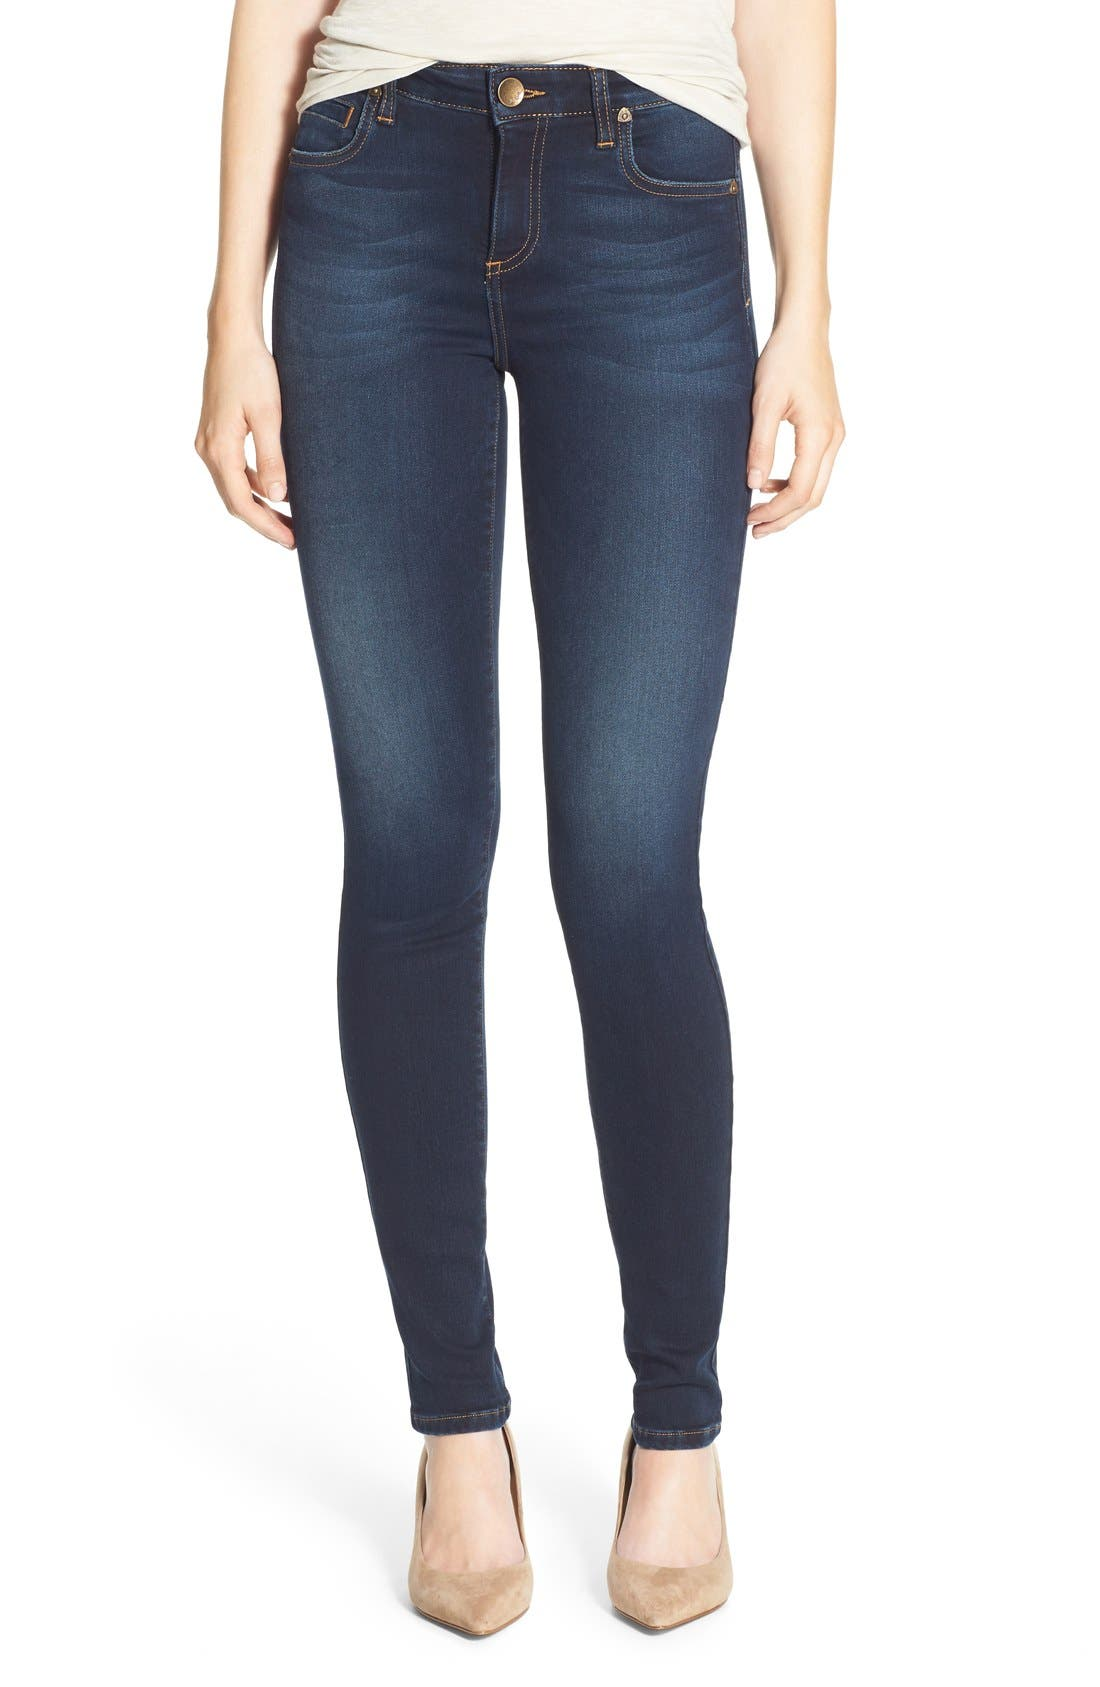 Main Image - KUT from the Kloth 'Diana' Stretch Skinny Jeans (Brisk)